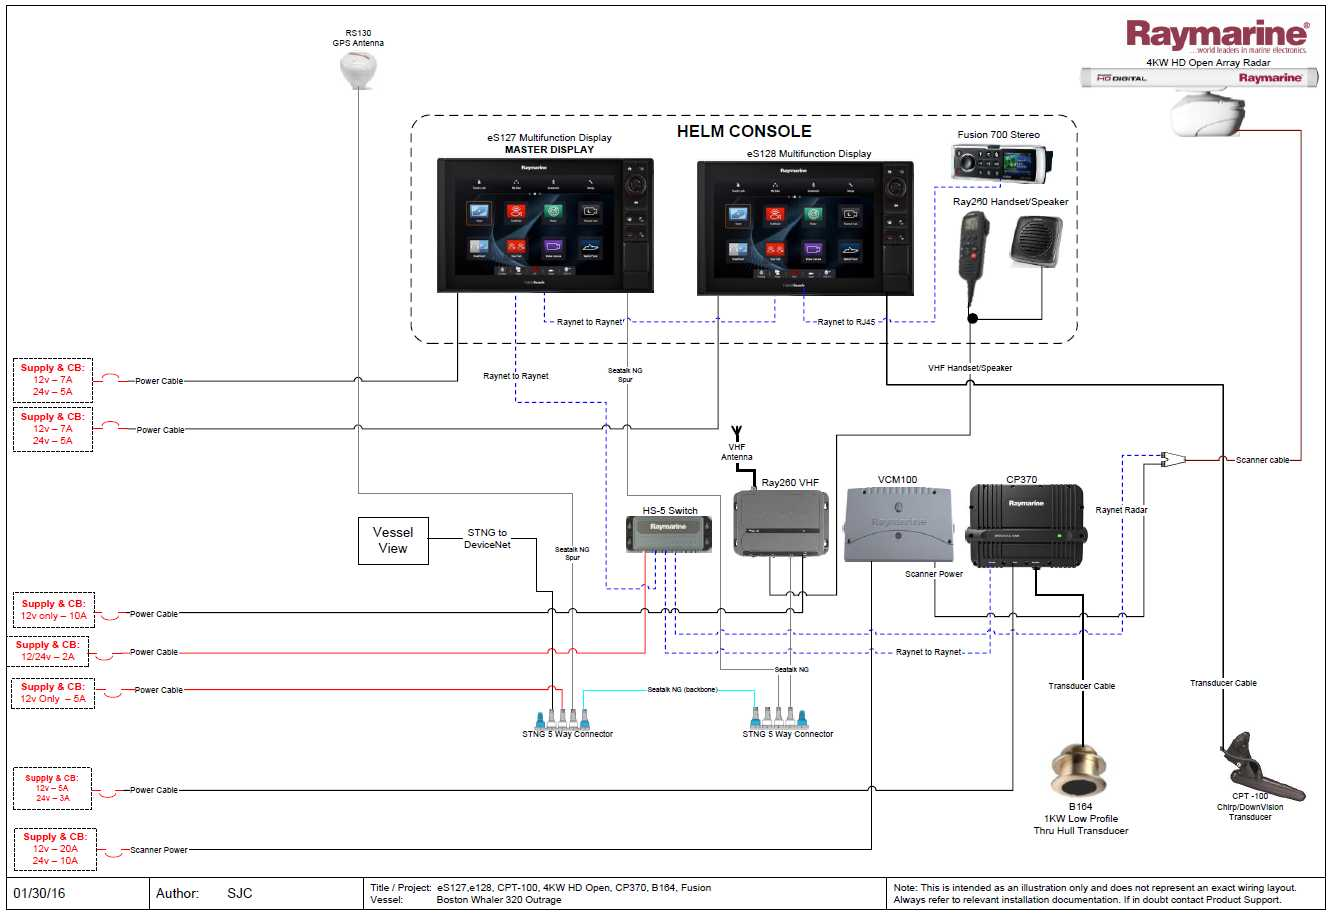 attachment Raymarine Network Wiring Diagrams on gps antenna, c120 cable for radar, fluxgate compass, patch cable, b256 transducer, seatalk hs,